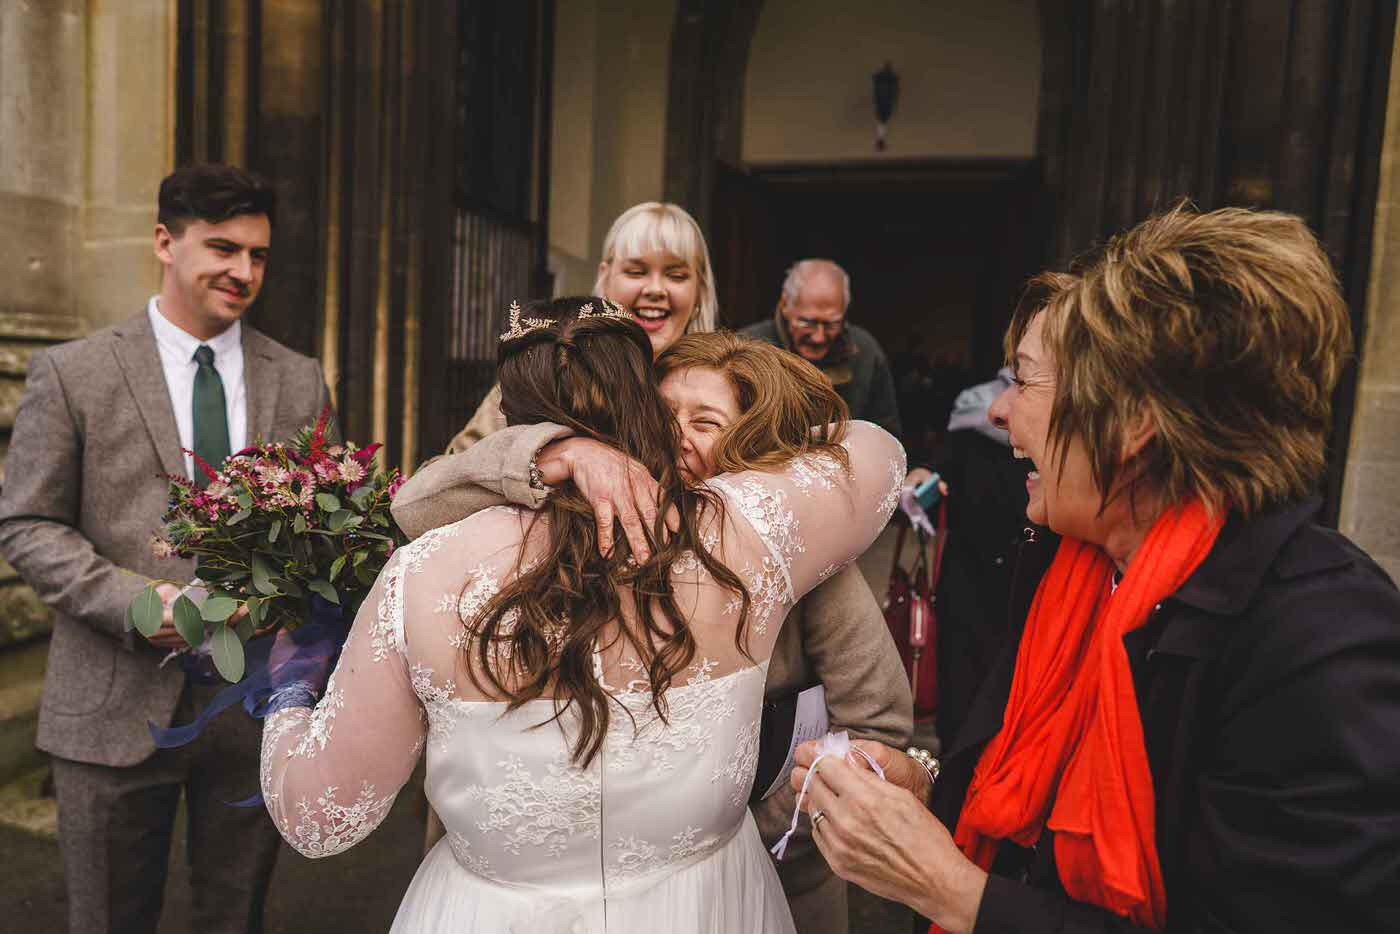 Hugs at a church wedding in Shropshire